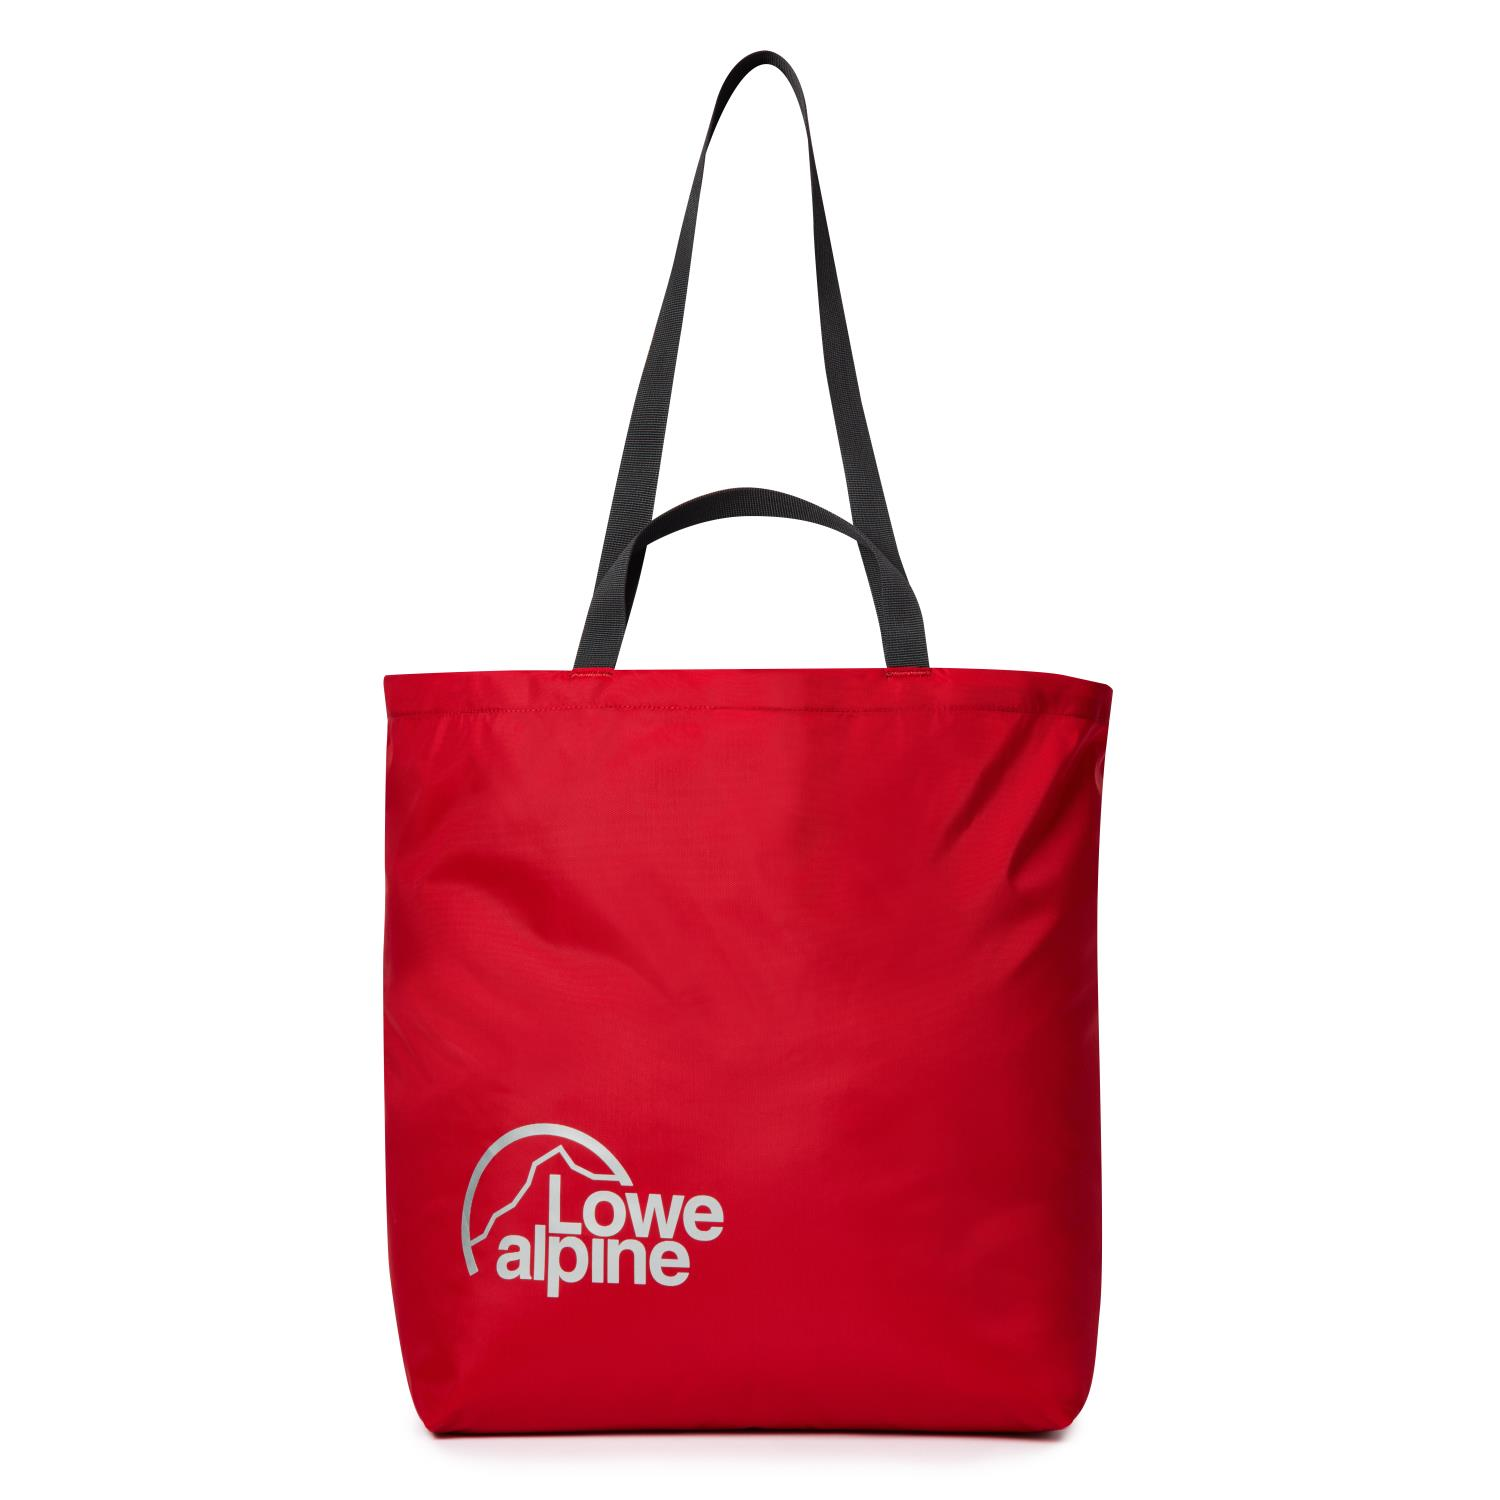 Lowe alpine  Bag For Life Assorted